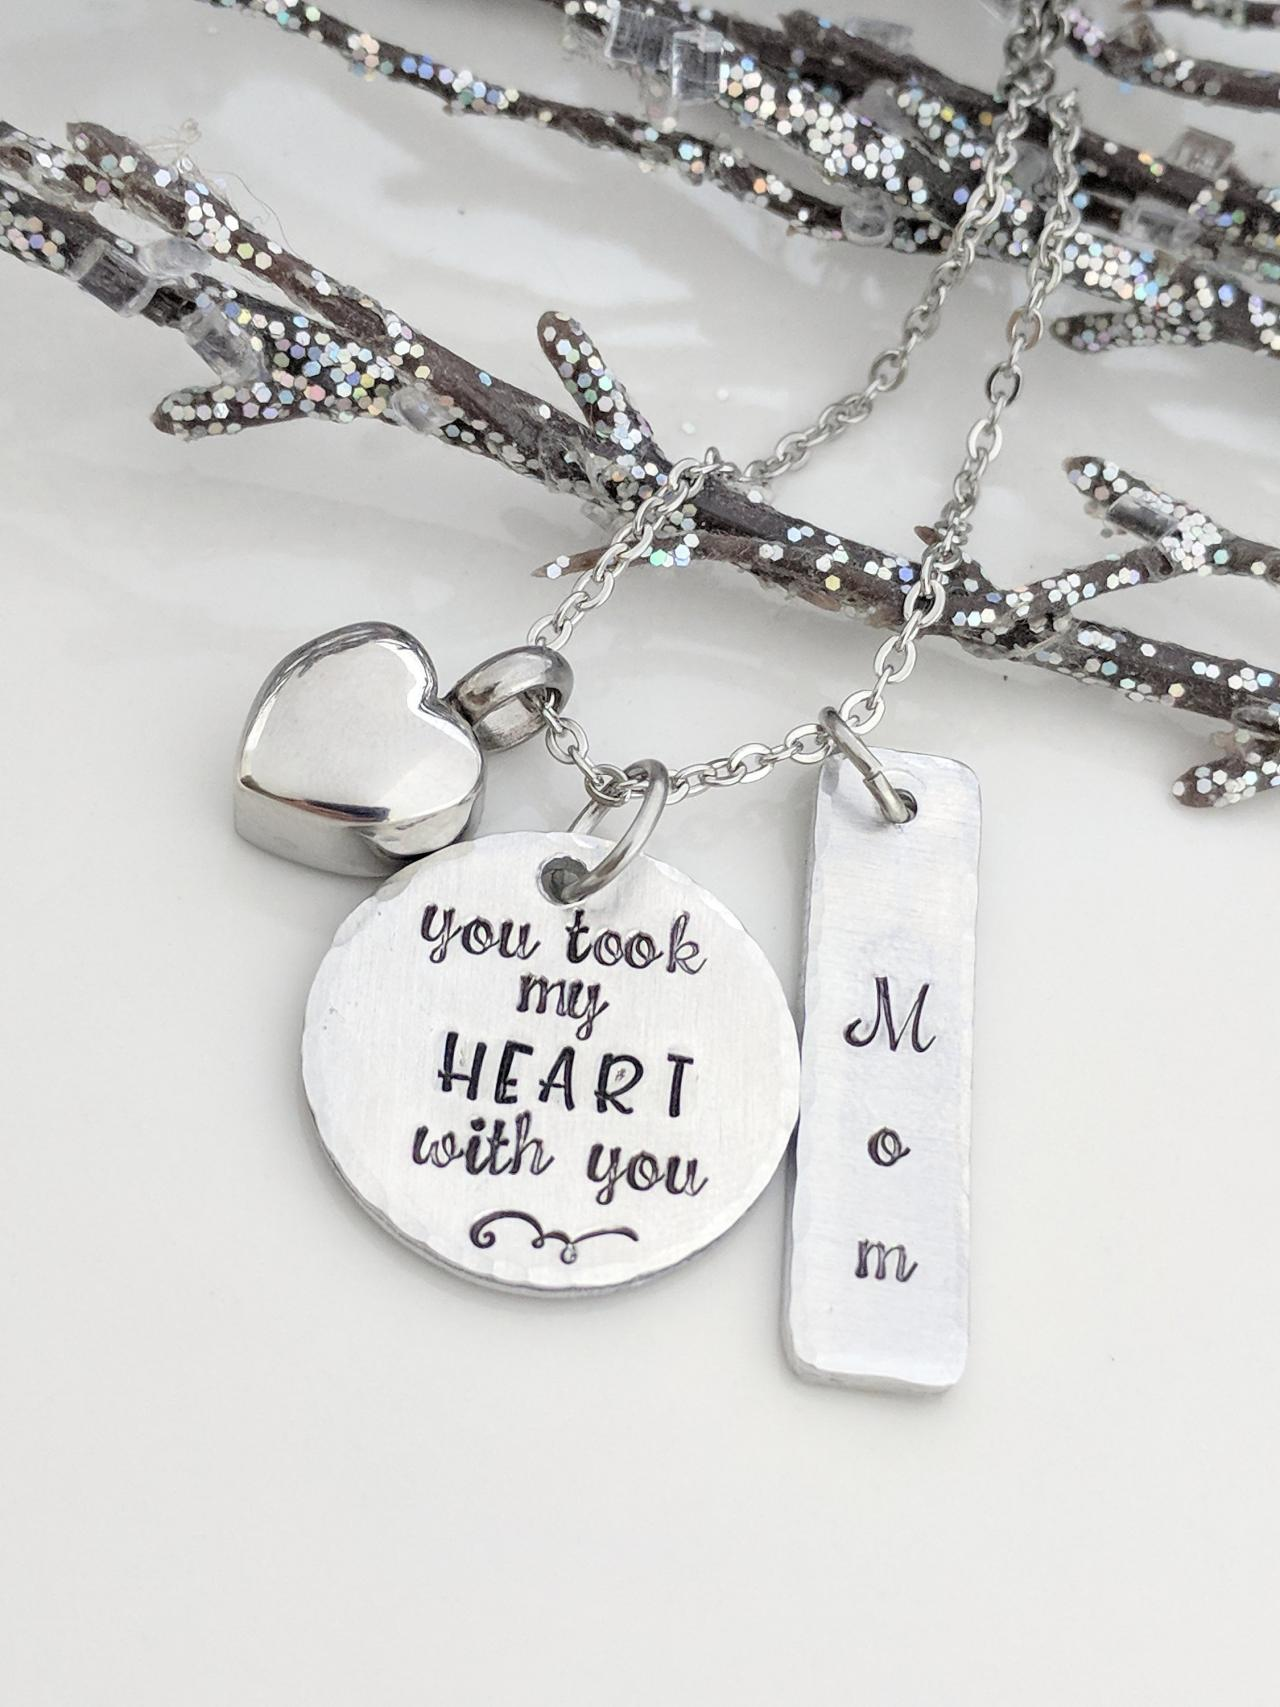 Hand Stamped Necklace You Took My Heart With You-Urn Necklace-Cremation Hand Stamped Jewelry-Ashes Necklace-Ashes Keepsake-Urn Jewelry-Memorial Jewelry-Loss of Mom-Loss of Dad